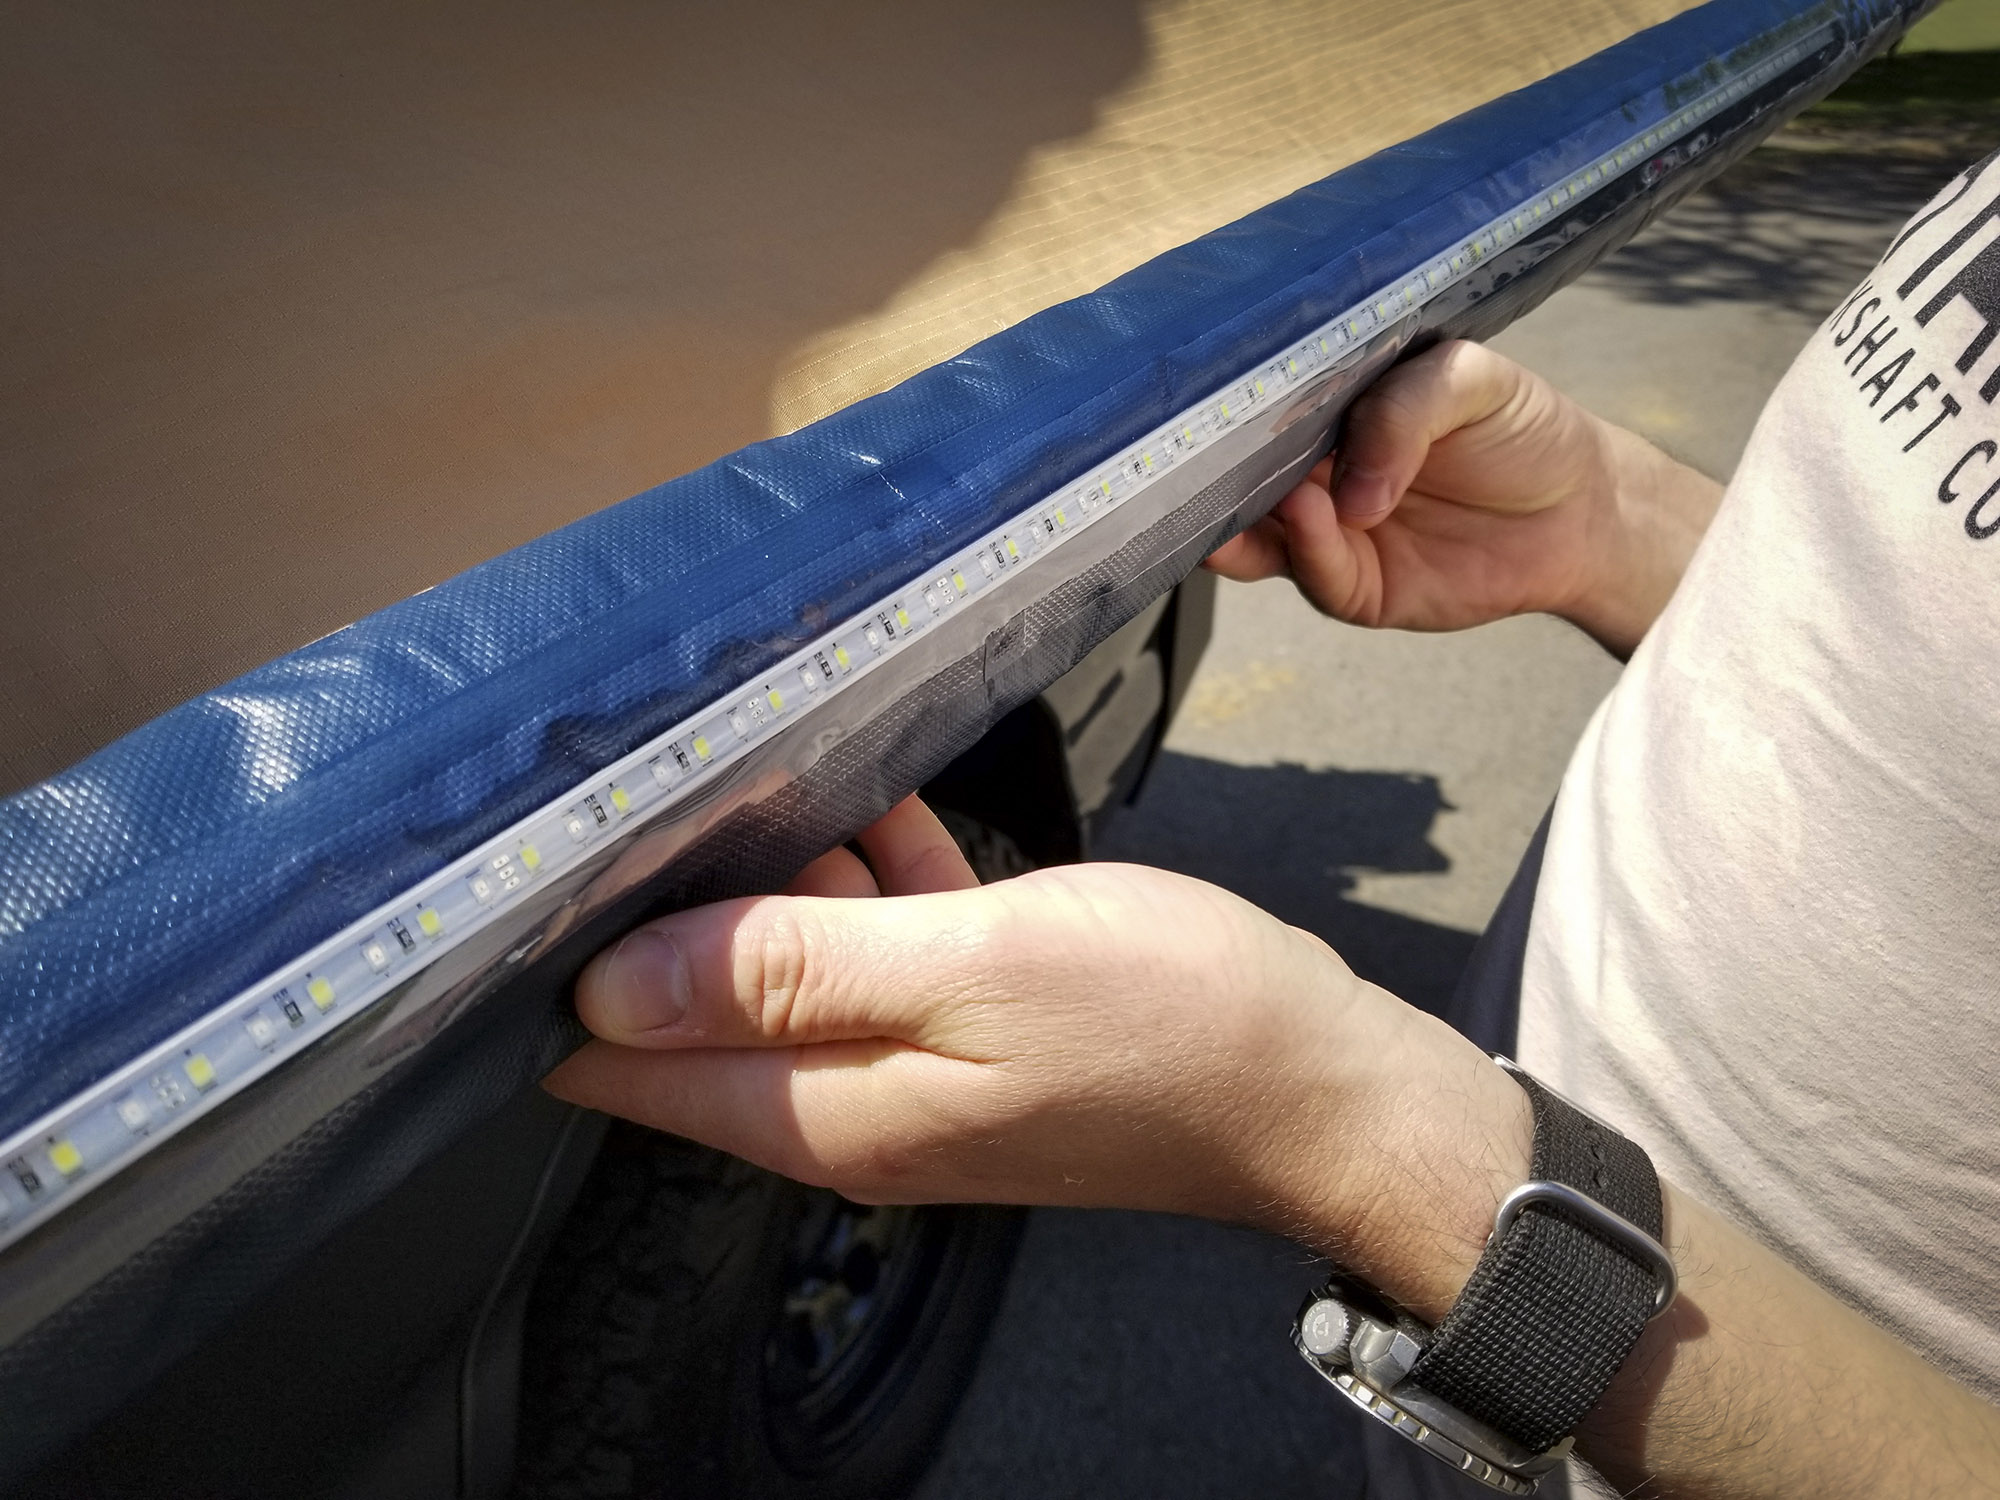 The ARB 2500MM awning has a near side-to-side LED lighting strip